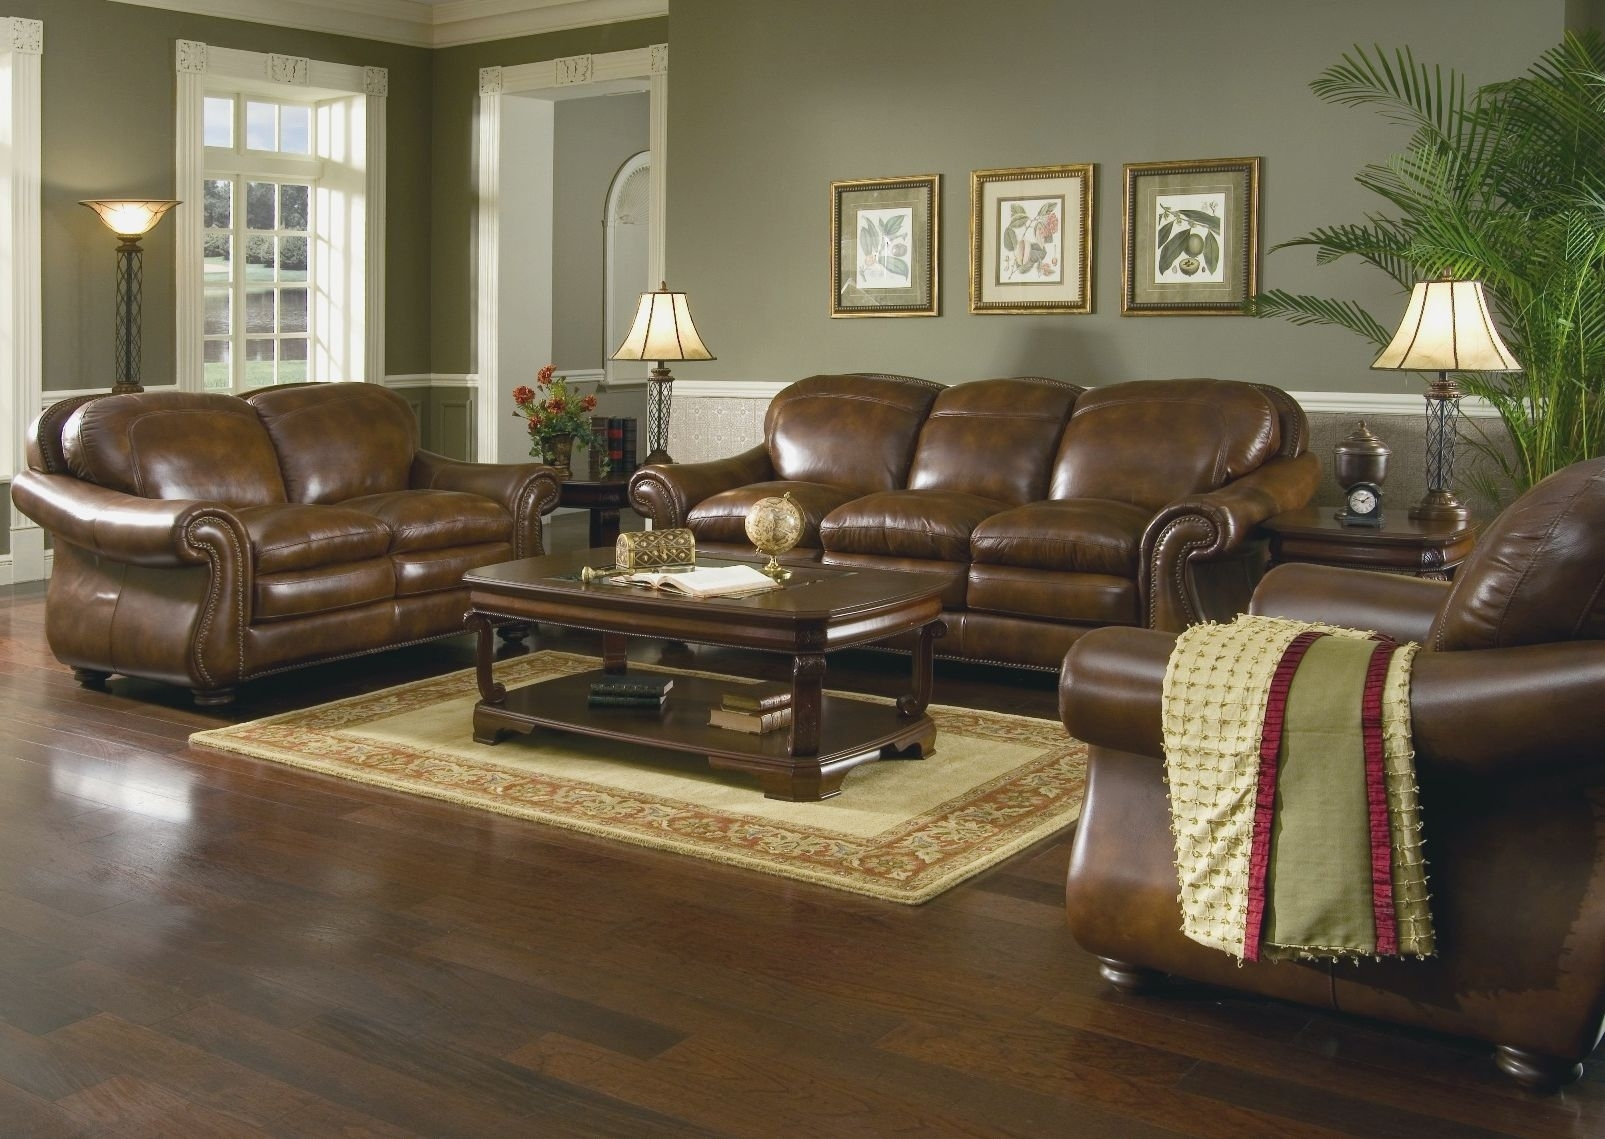 Living Room : Dark Brown Couch Living Room Decor Relaxed Modern regarding Latest Brown Couch Wall Accents